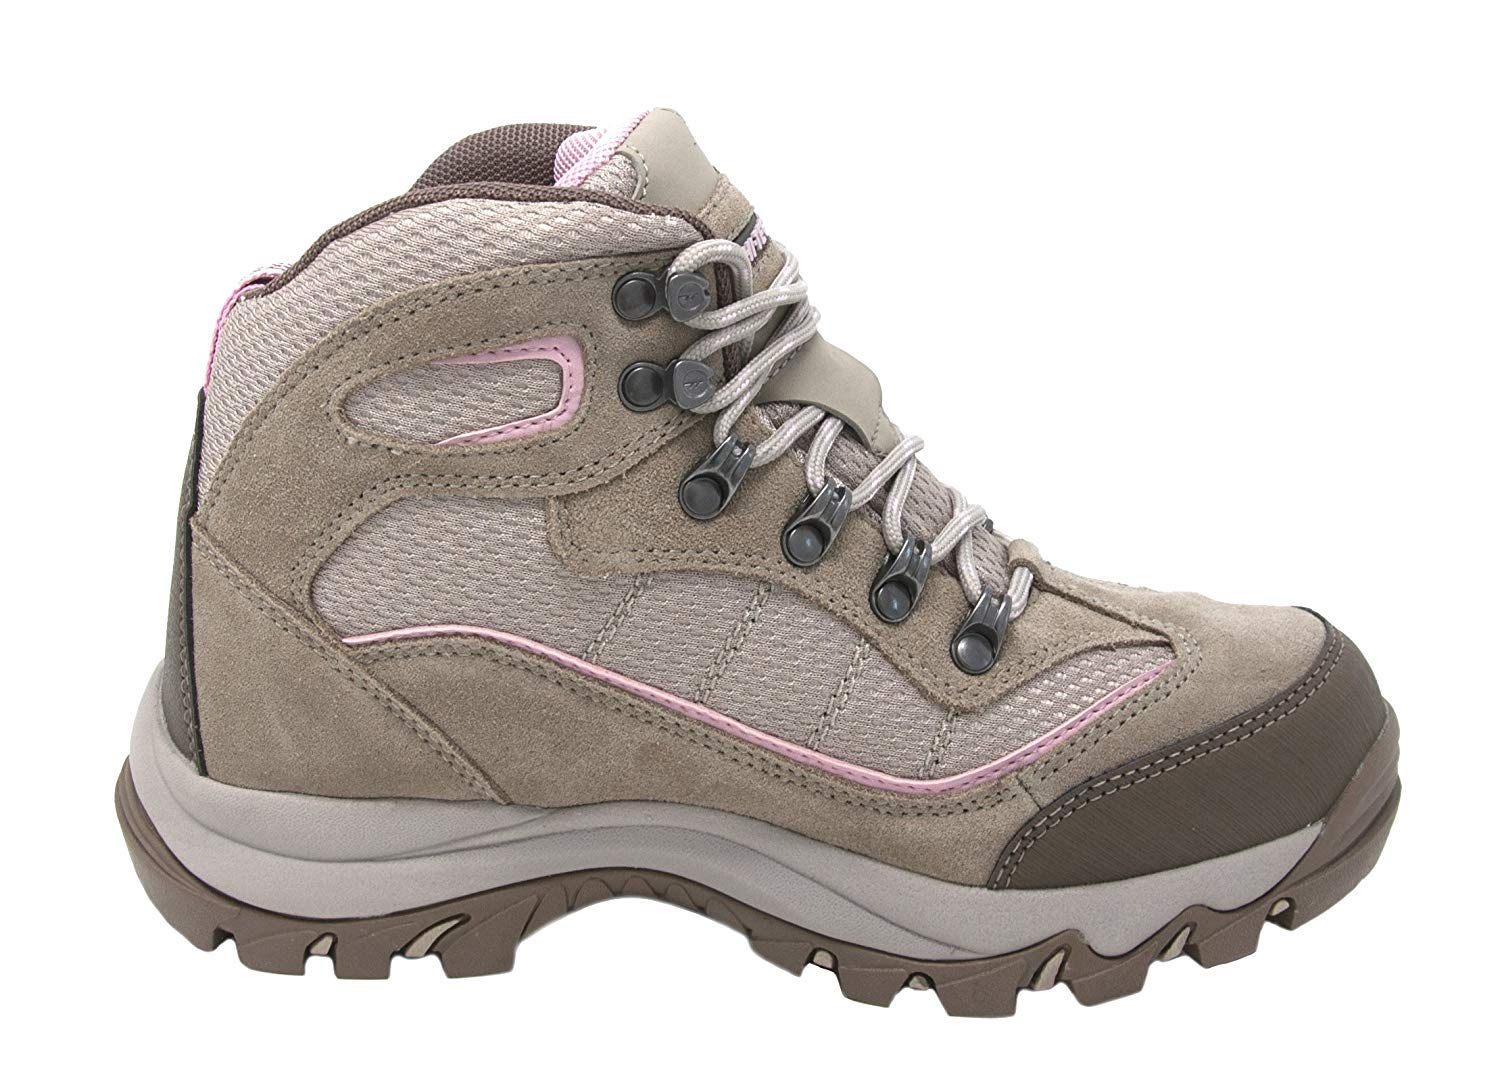 Hi-Tec Women's Skamania Mid-Rise Waterproof Hiking Boot, Natural/Pink, 9 Wide by Hi-Tec